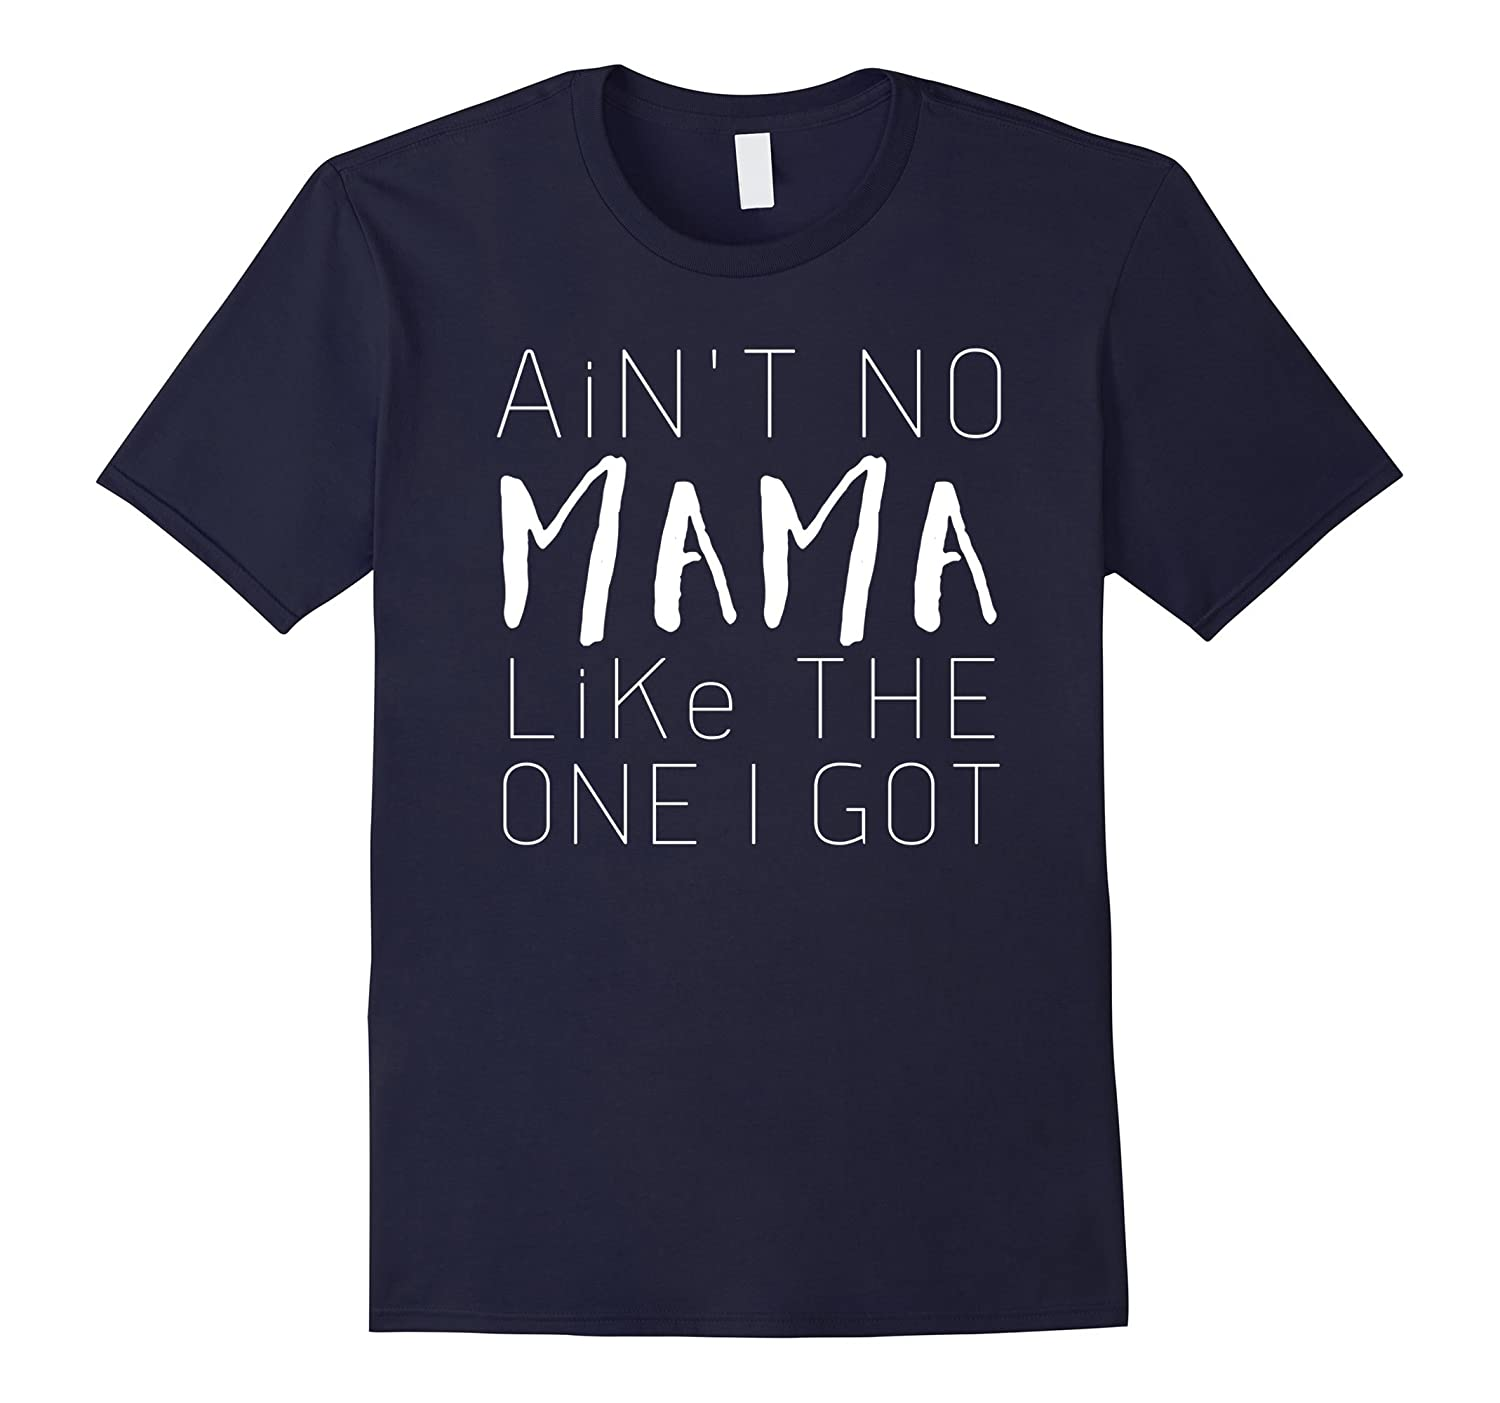 Aint No Mama Like the One I Got Shirt  Boys  Girls  Men-Vaci